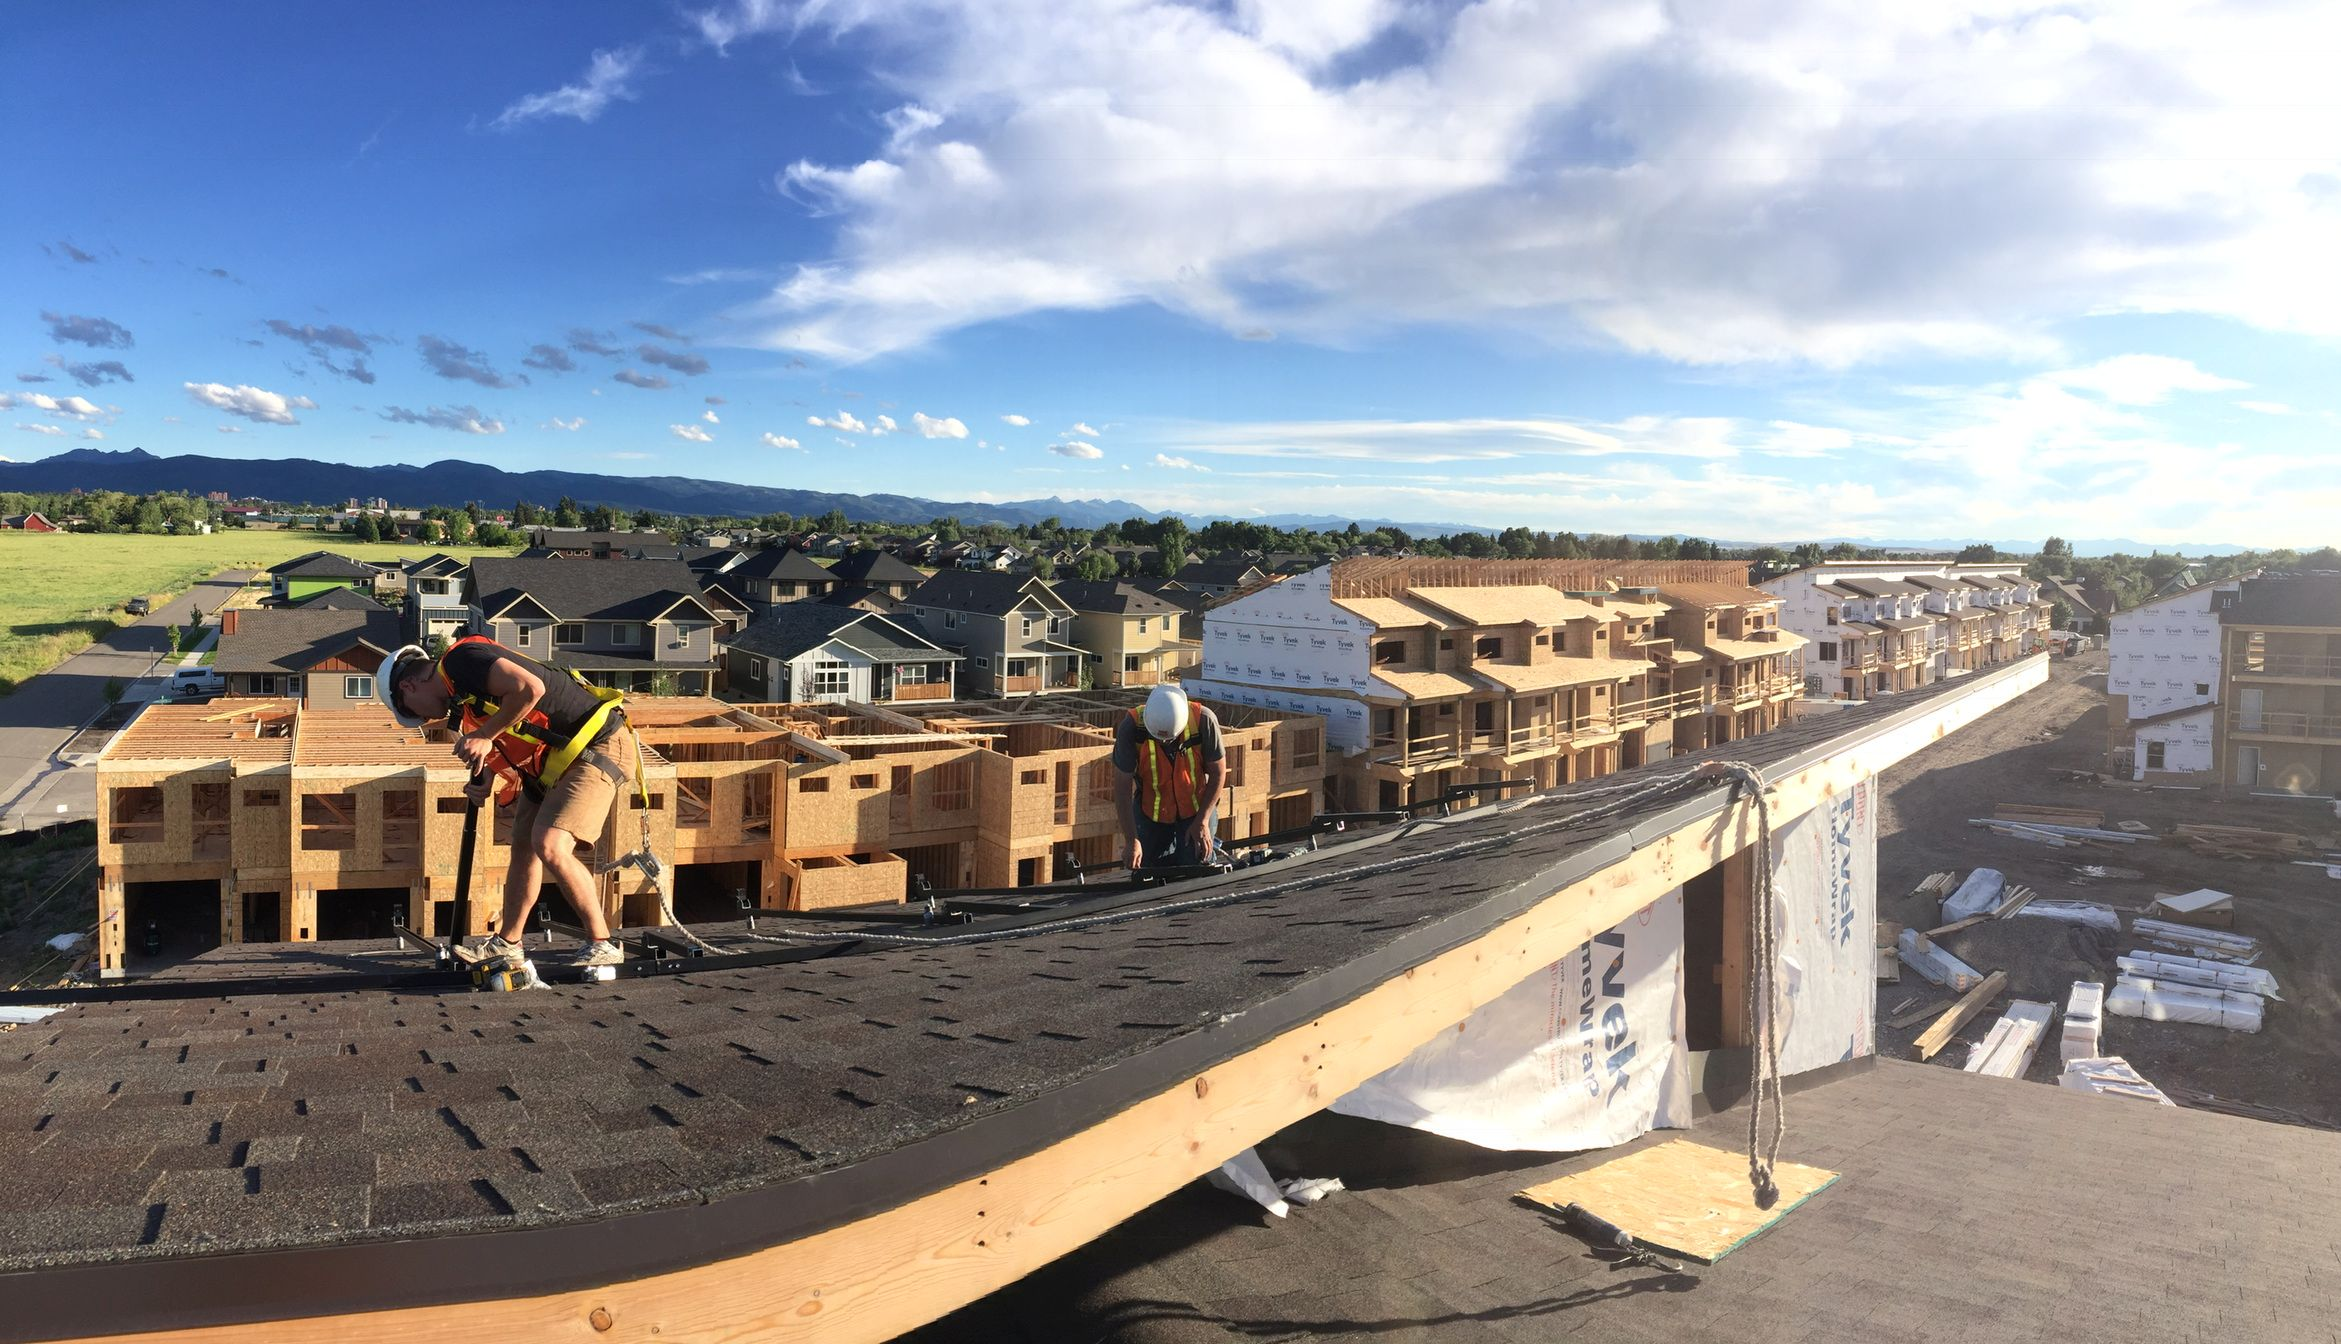 Solar Hot Water and Solar Electricity Cut Costs for Bozeman Affordable Housing Project